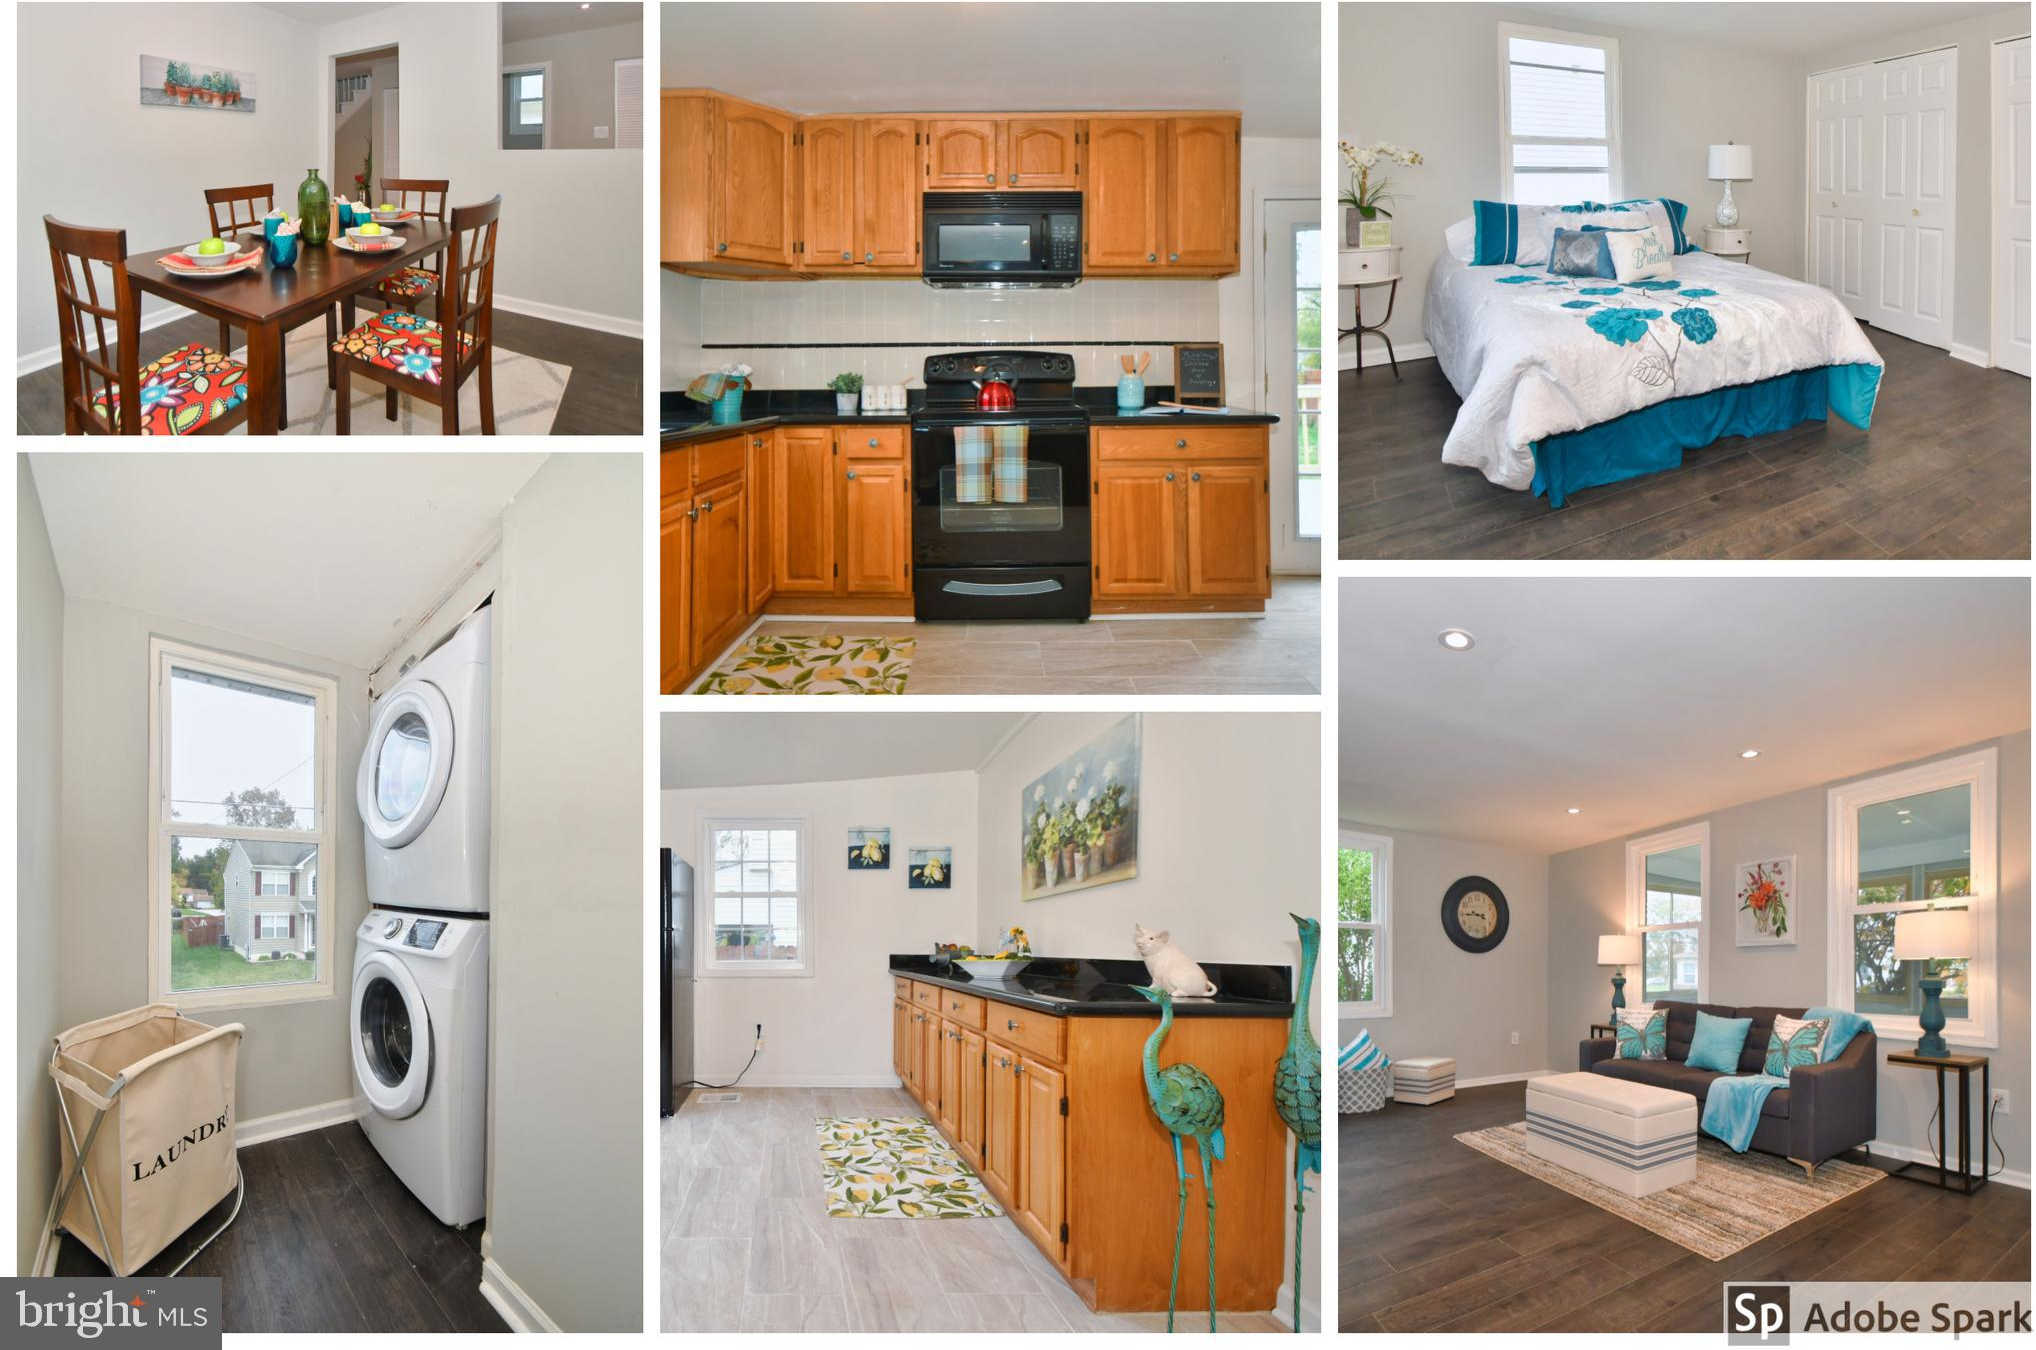 2512 Sycamore Avenue, Sparrows Point, MD 21219 has an Open House on  Saturday, November 16, 2019 11:00 AM to 1:00 PM